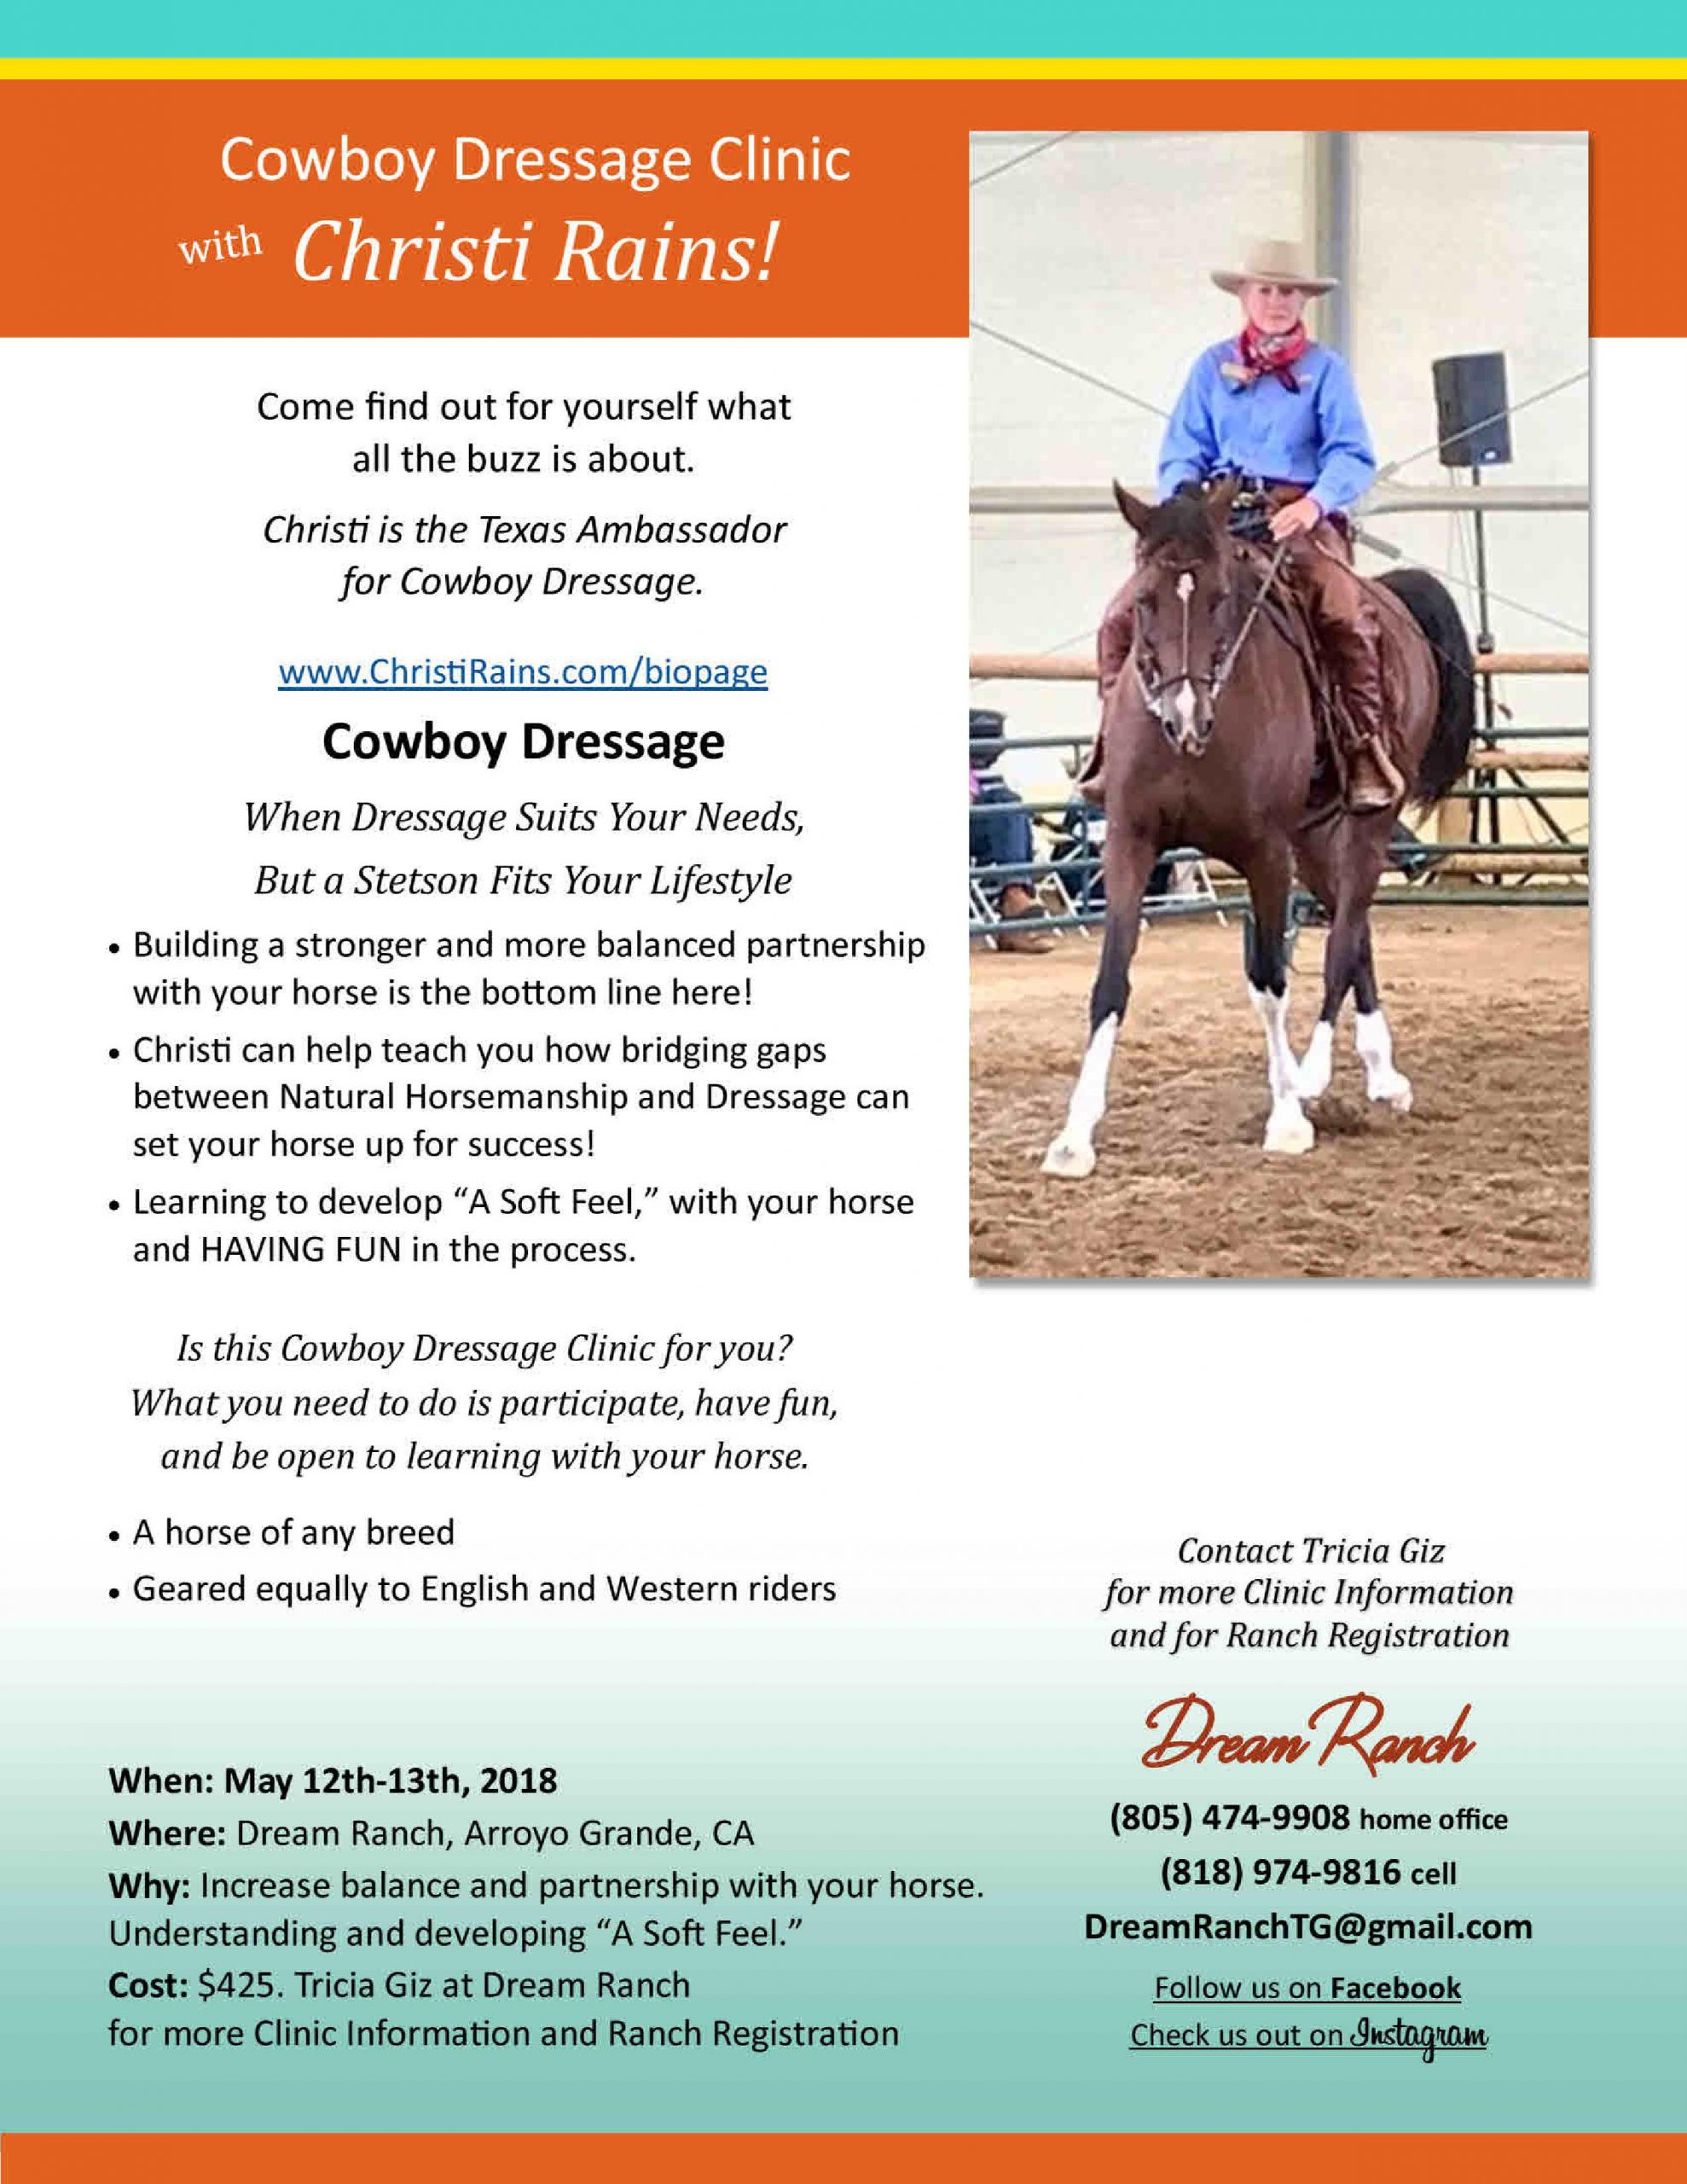 Apply the Game of Contact to Cowboy Dressage with Christi Rains   SLO Horse News